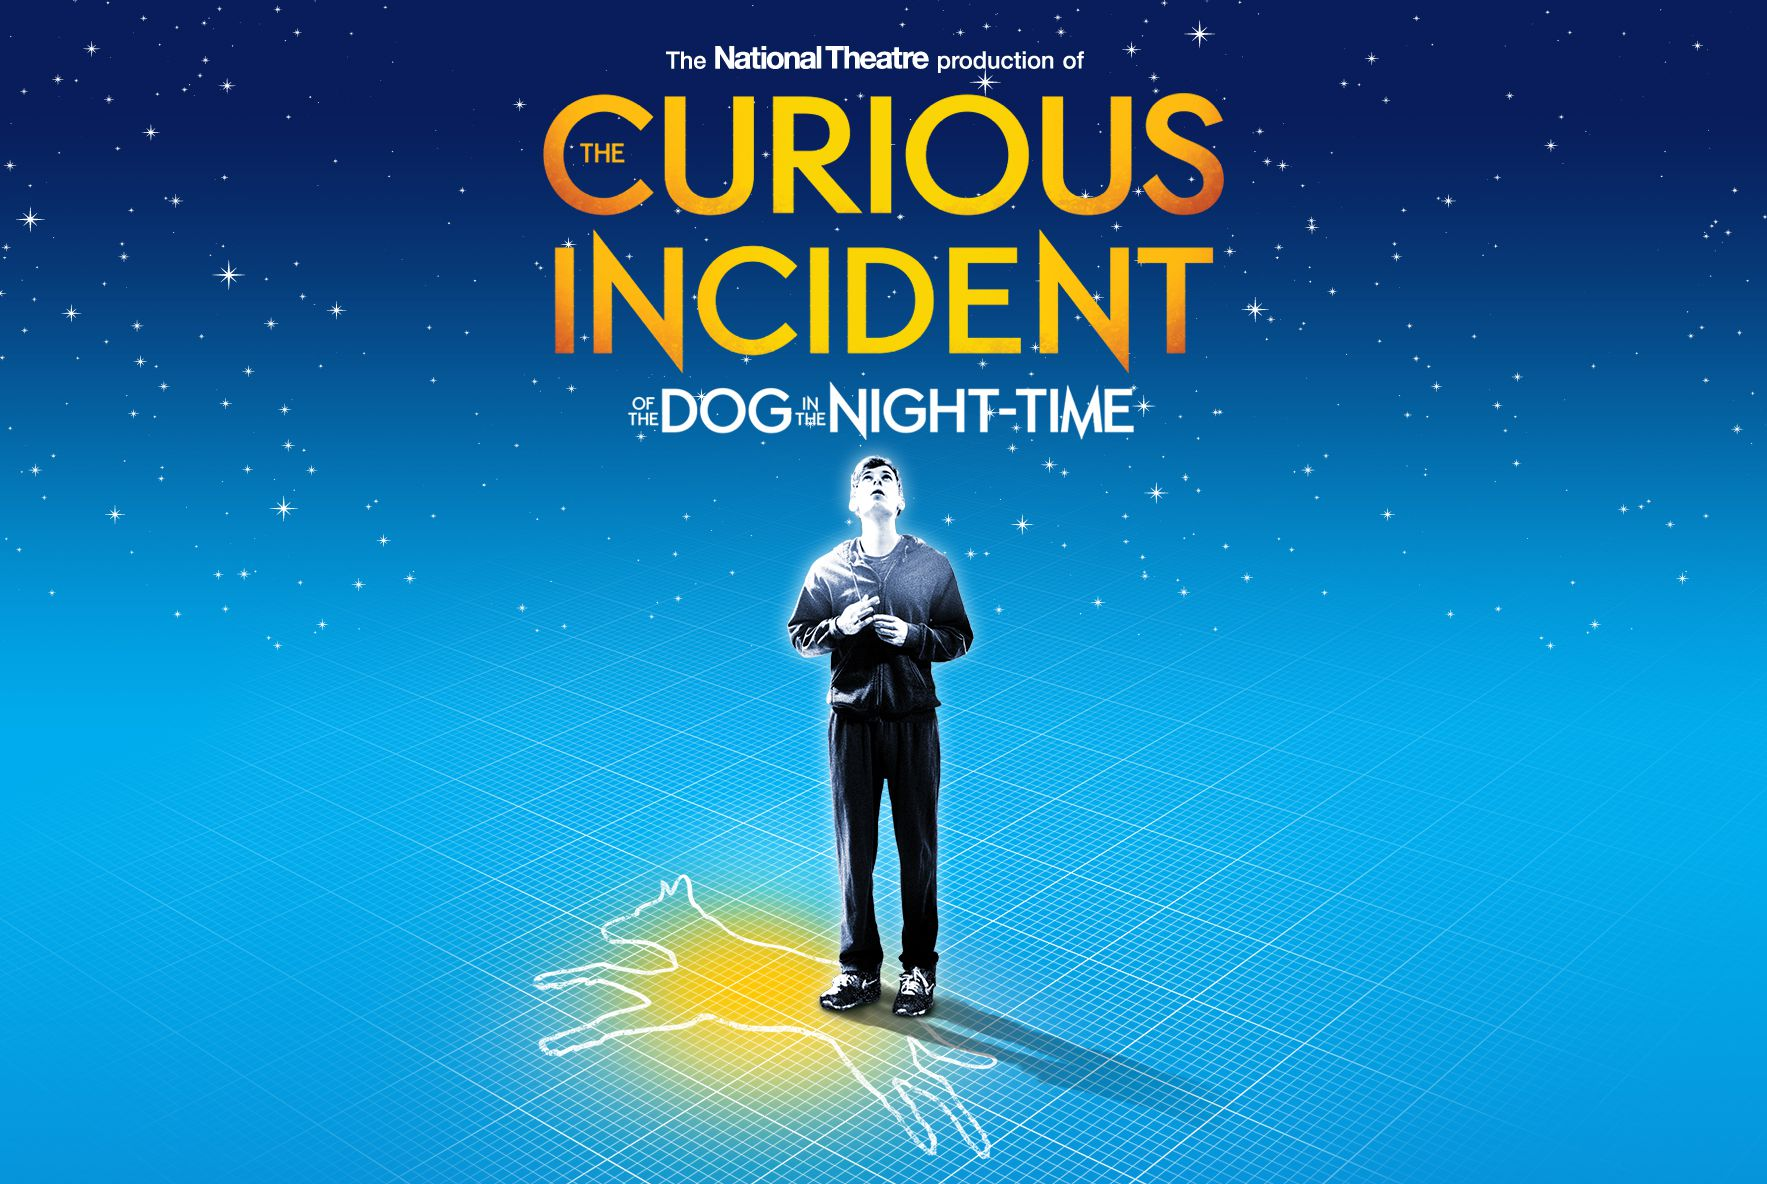 curious incident of a dog in the nighttime mark haddon essay The book the curious incident of the dog in the night-time written by mark haddon was chosen for the analysis since this book is really noteworthy because the author managed to create the story as if it was told by a fifteen-year-old boy who suffered from a form of autism.